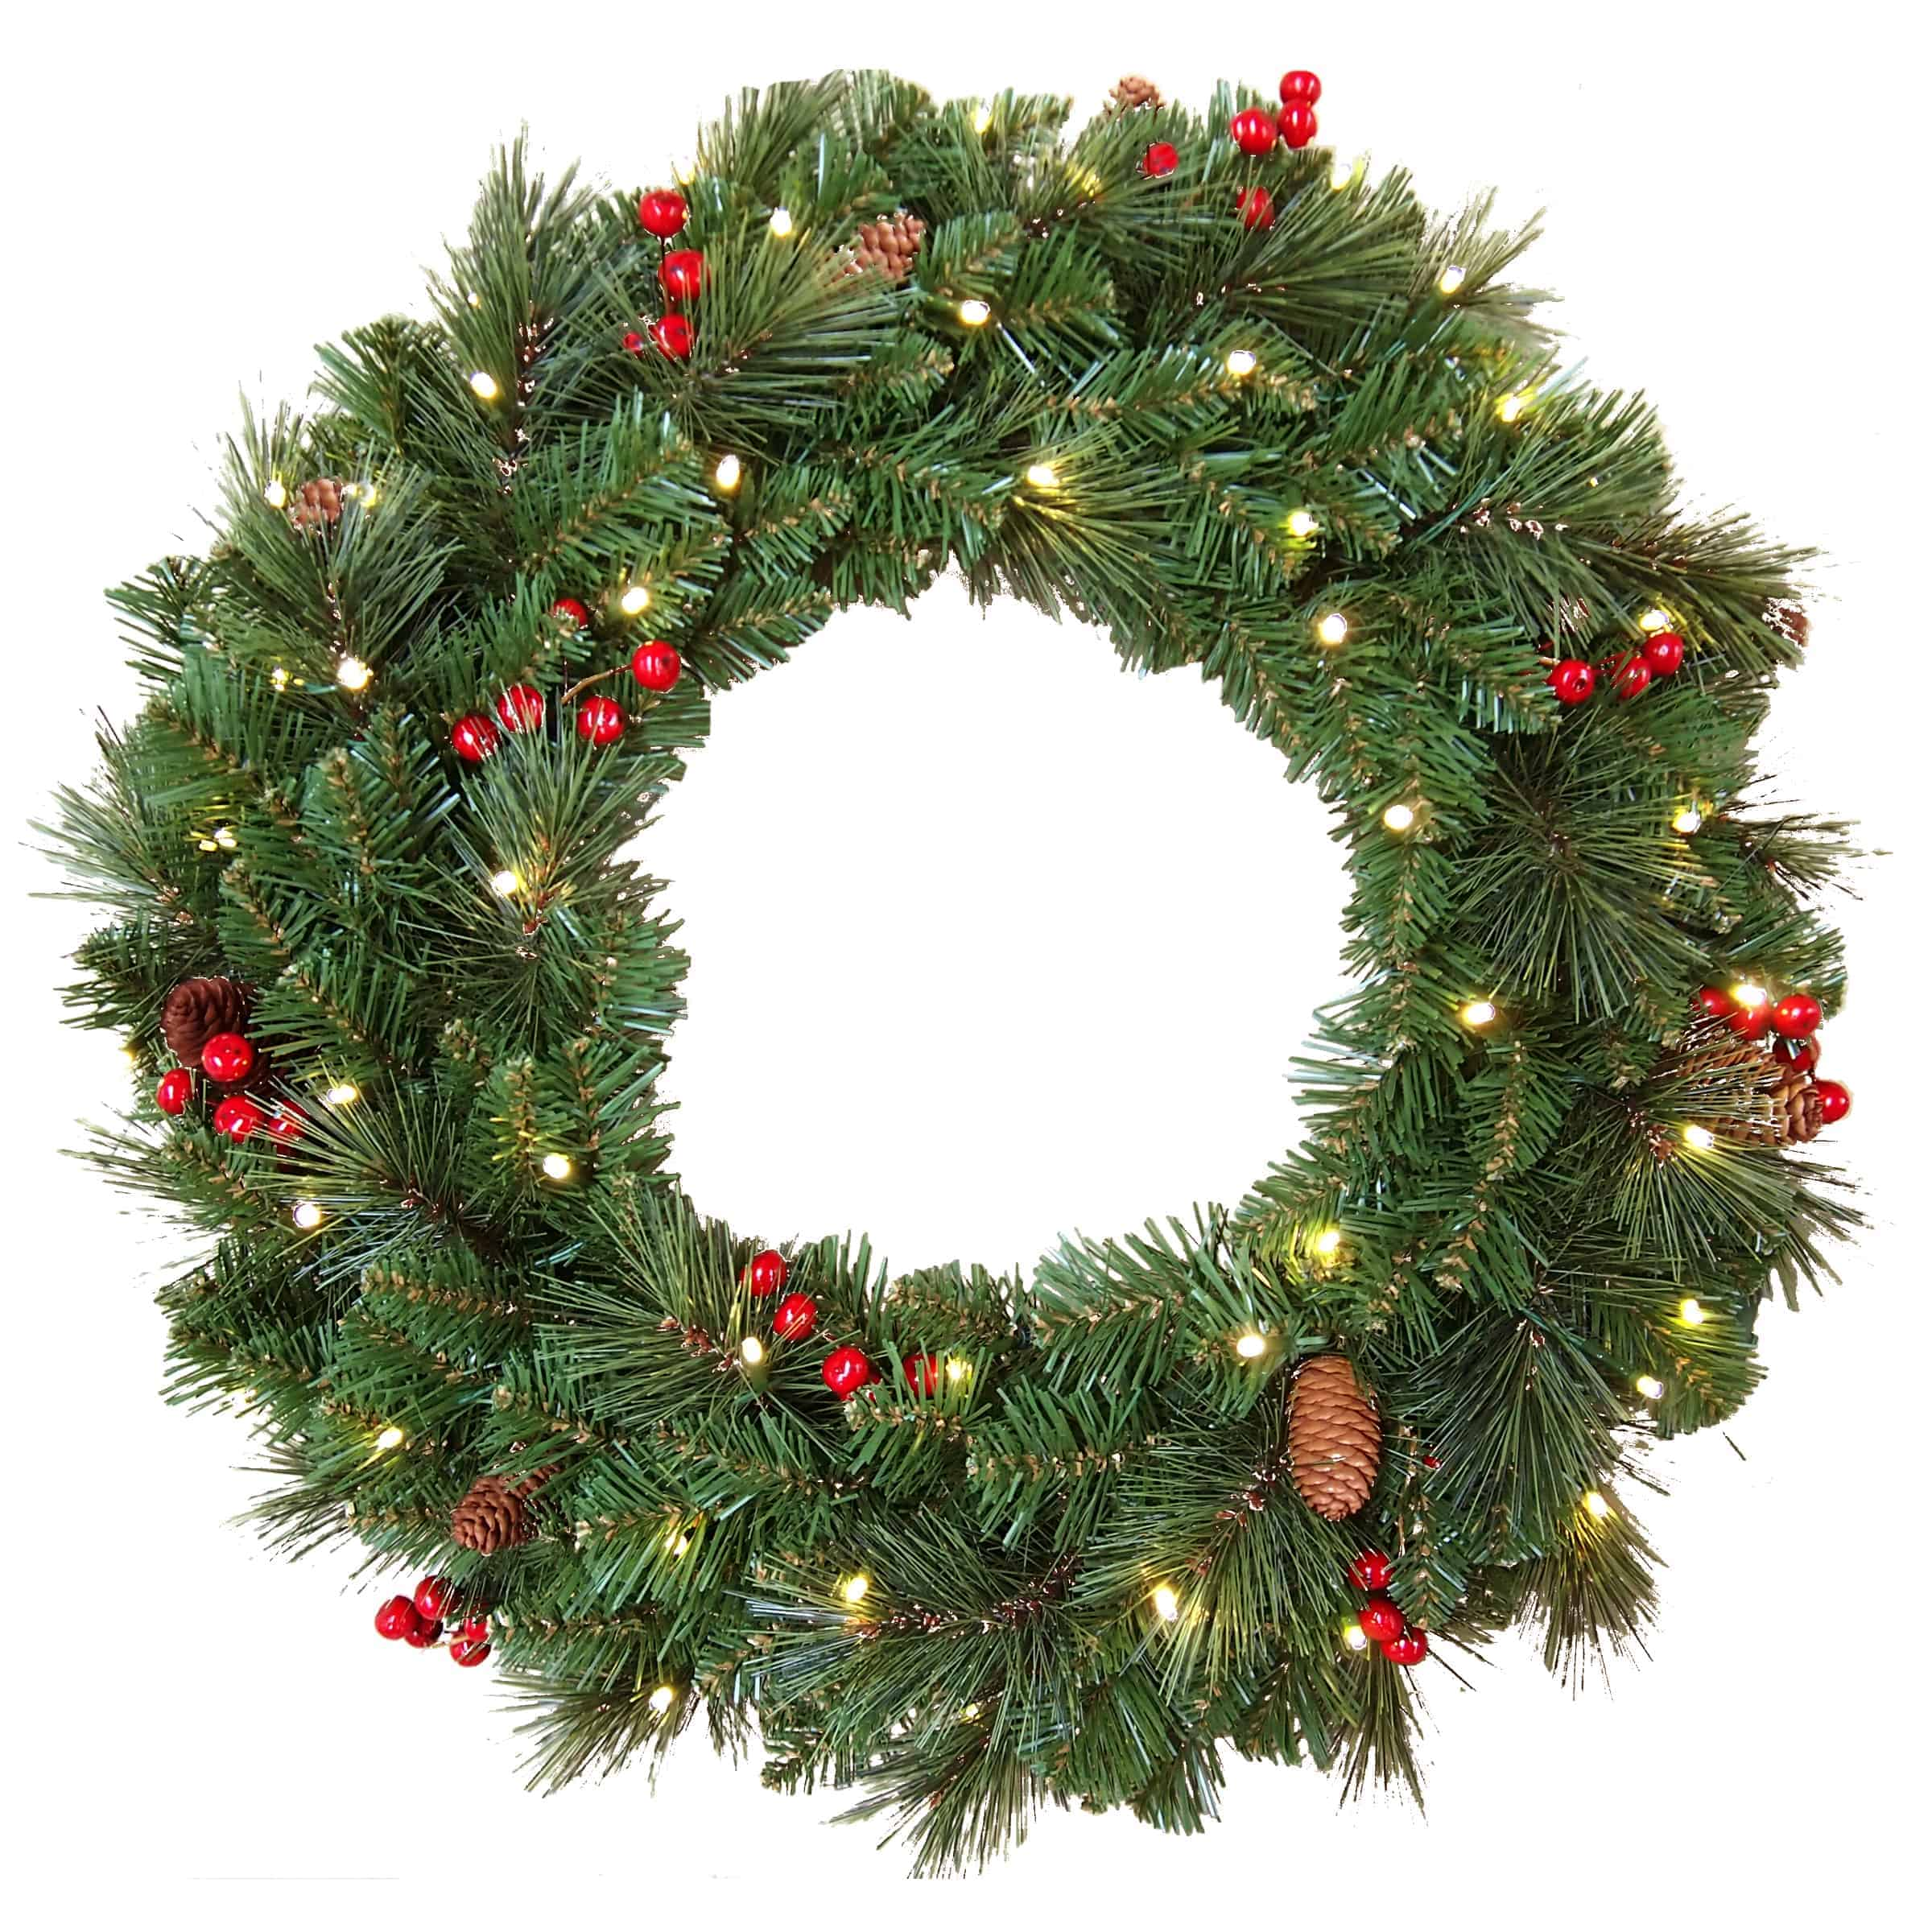 Christmas Garlands.24 61cm Everyday Collection Christmas Wreath With Pine Cones Red Berries Pre Lit